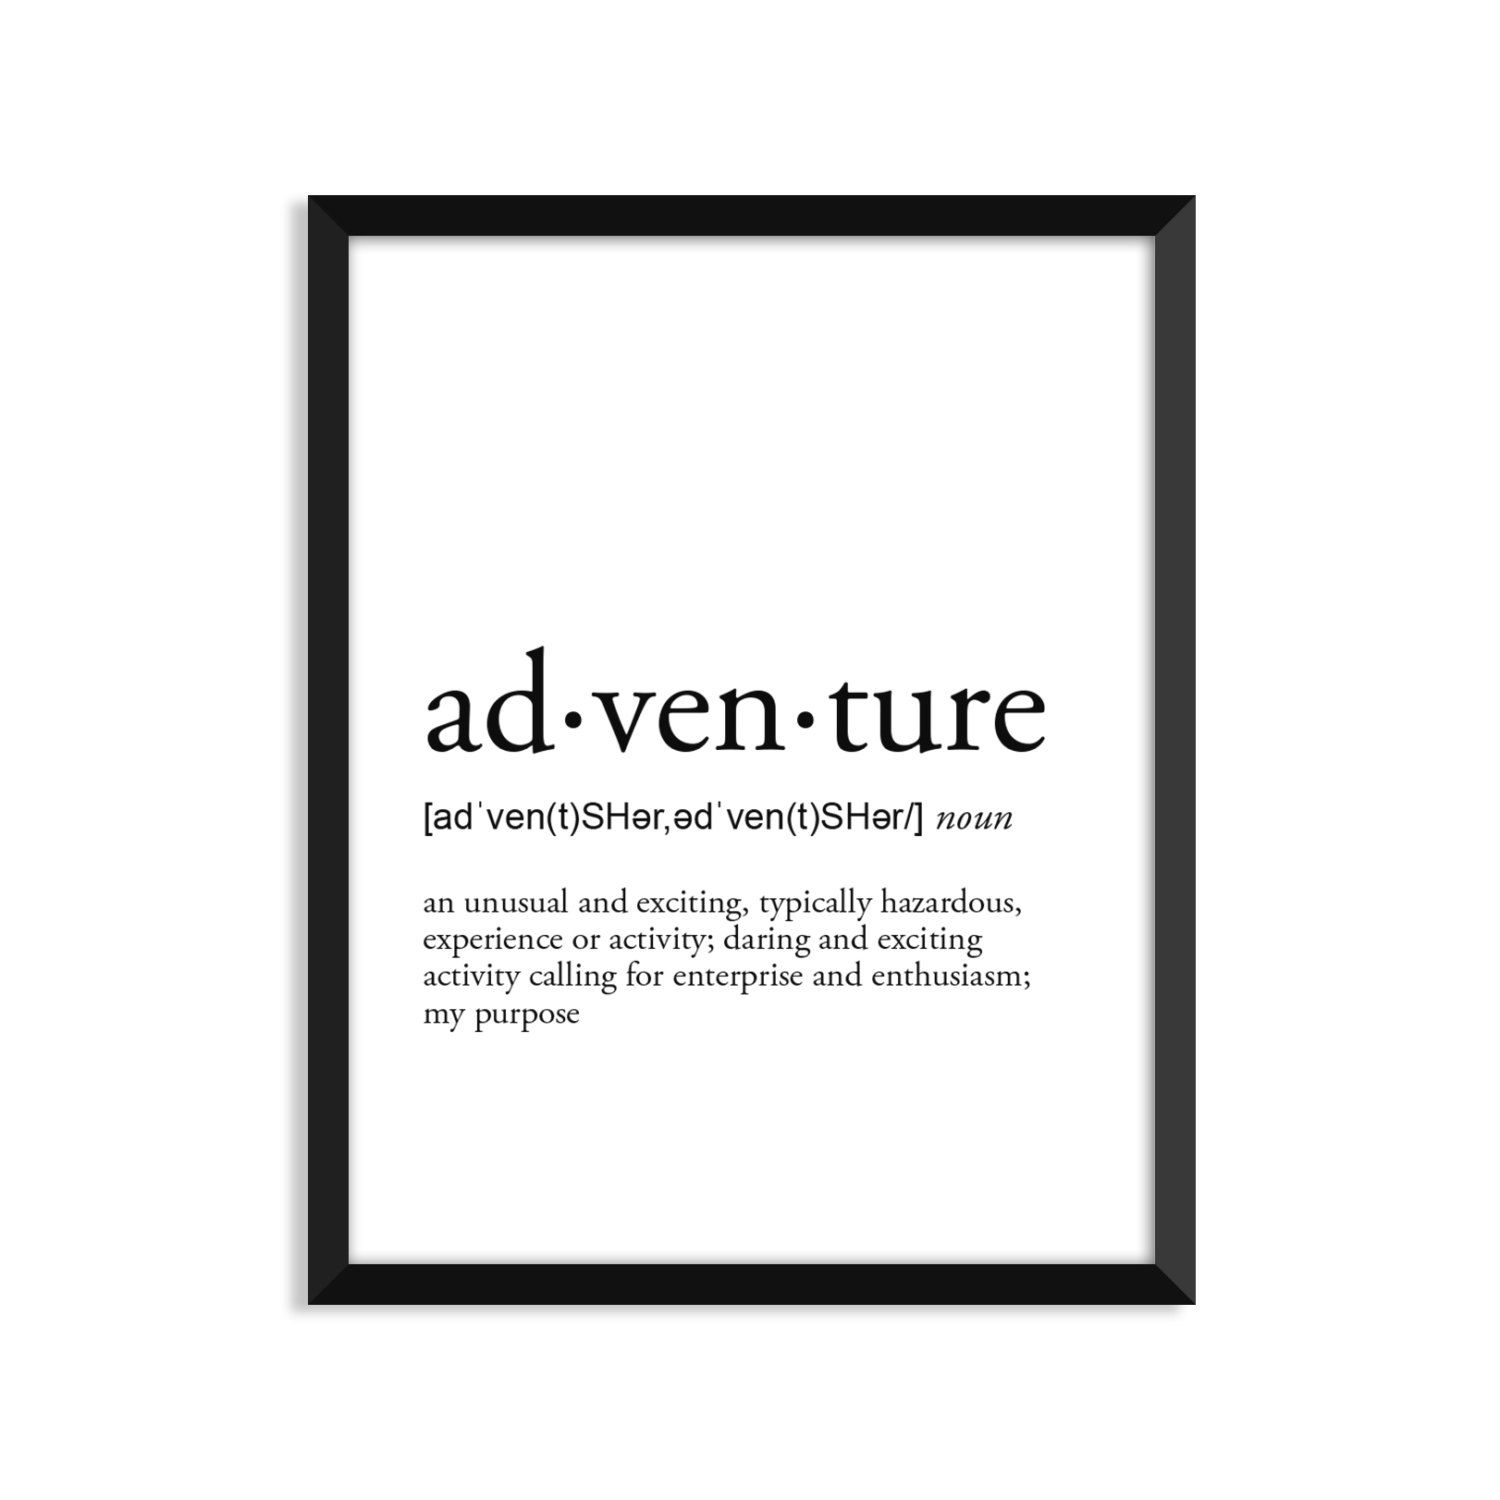 Adventure definition romantic dictionary art print office | Etsy